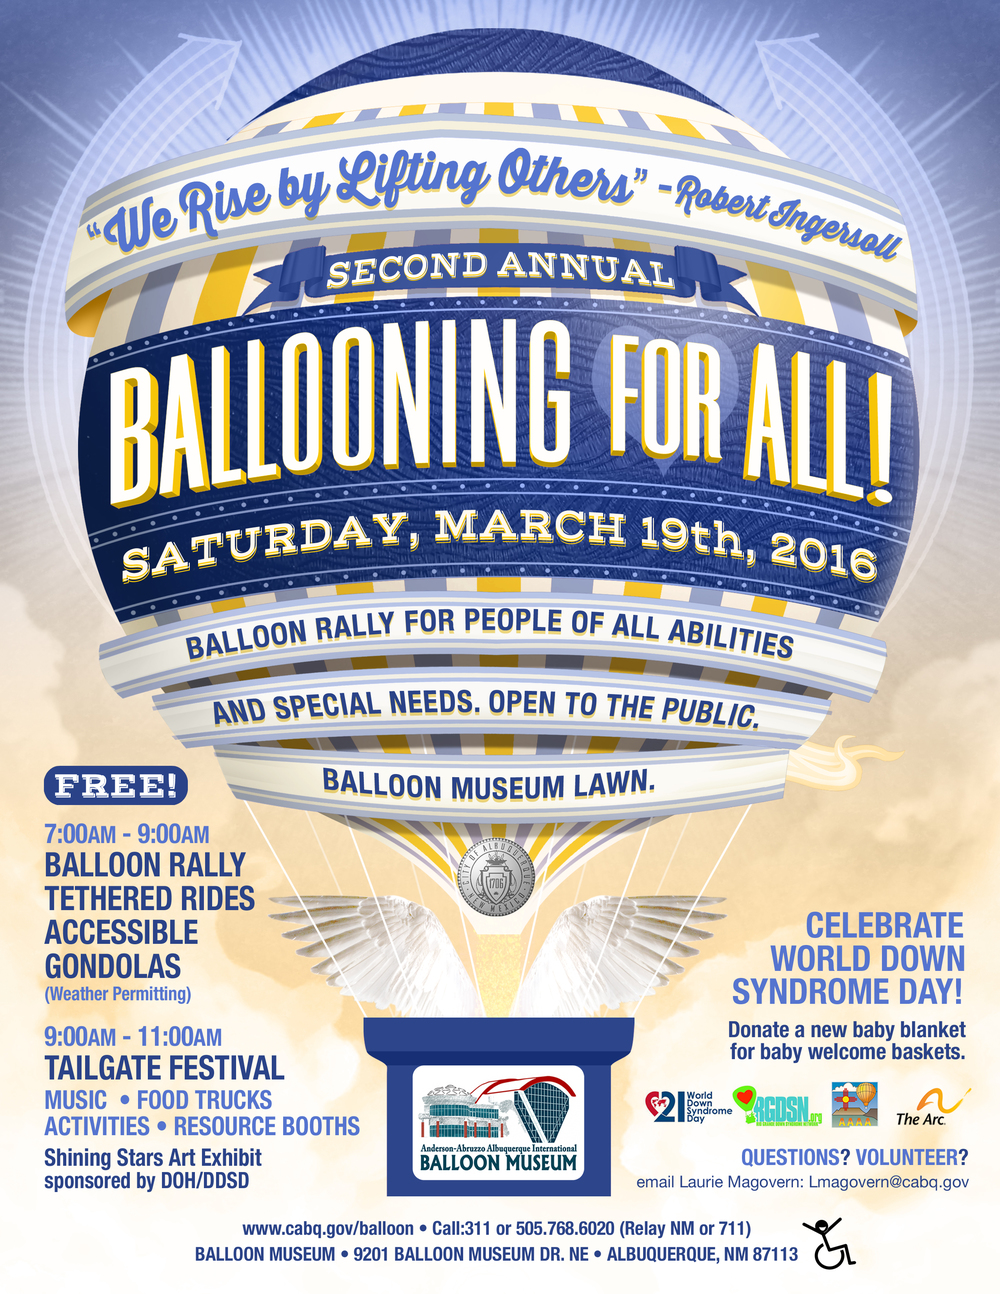 Ballooning For All! flier